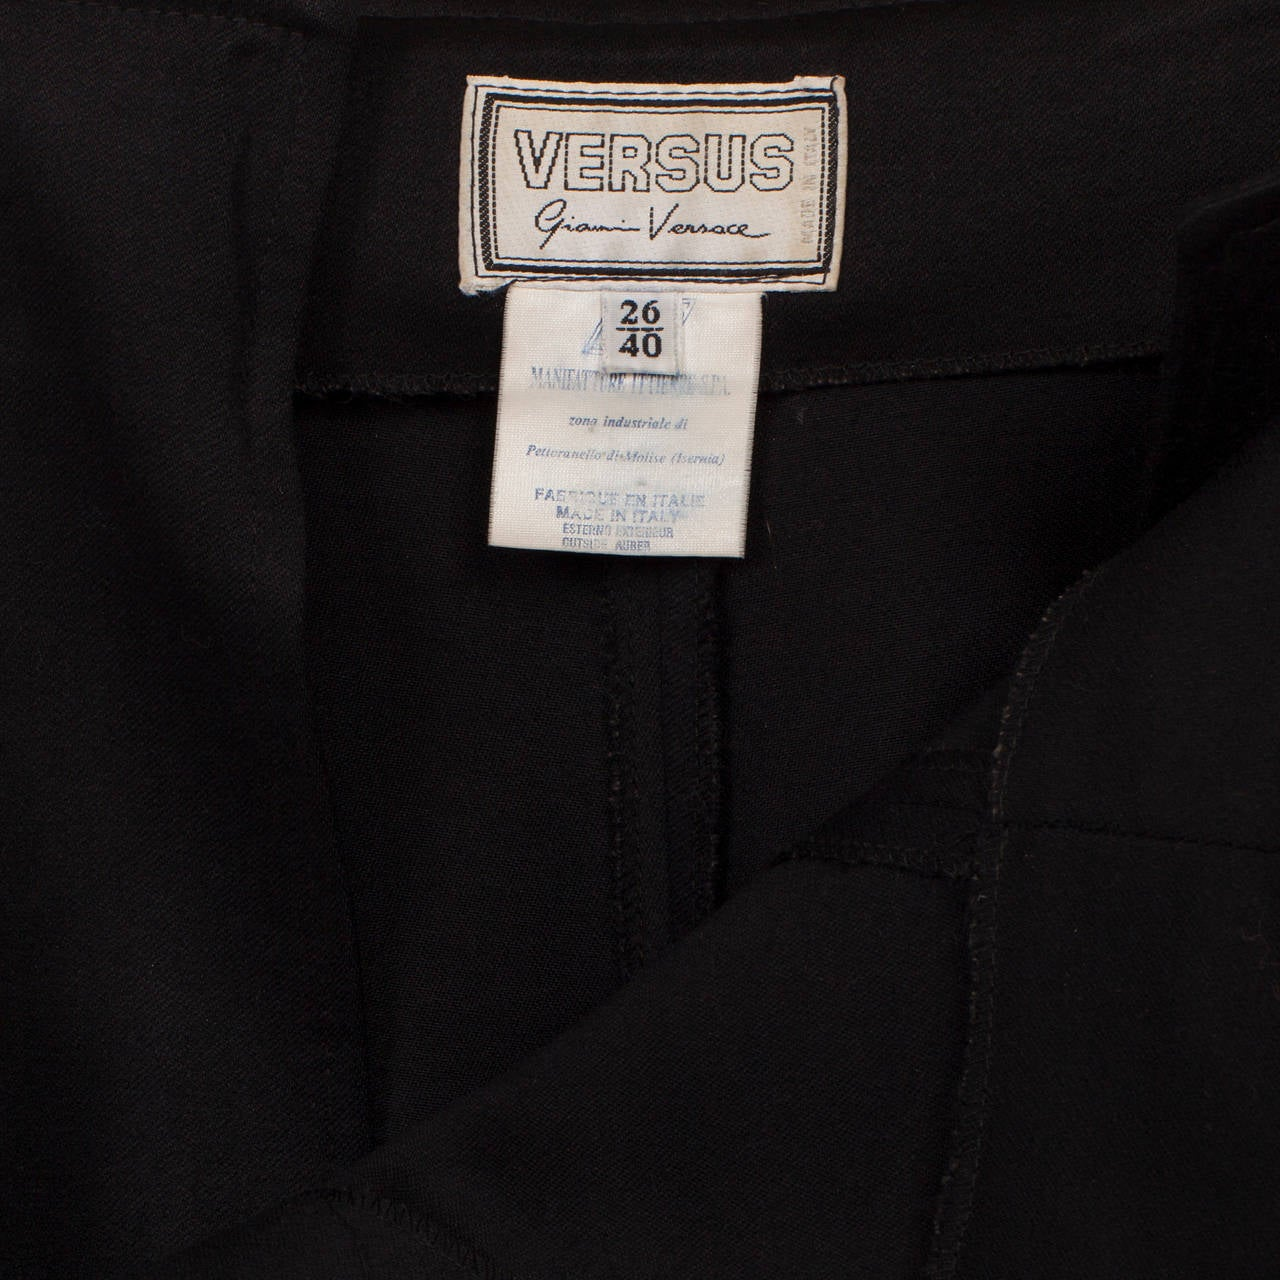 Versus Gianni Versace Black Marine High Waisted Shorts For Sale 1